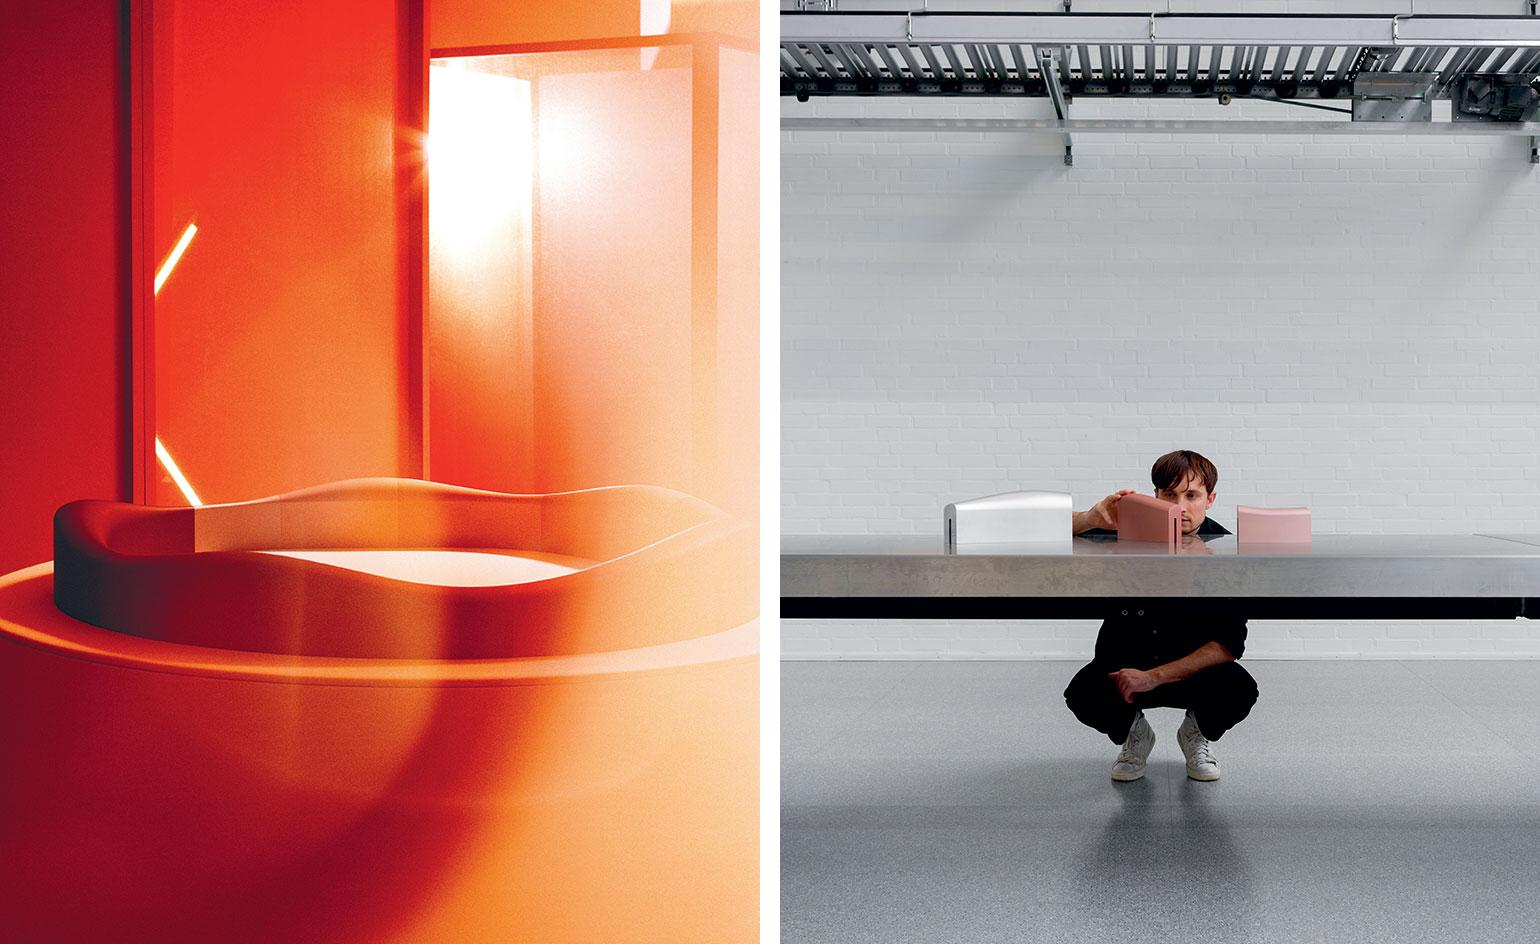 Germans Ermičs and Bang & Olufsen's musical object blends sound, sculpture and science